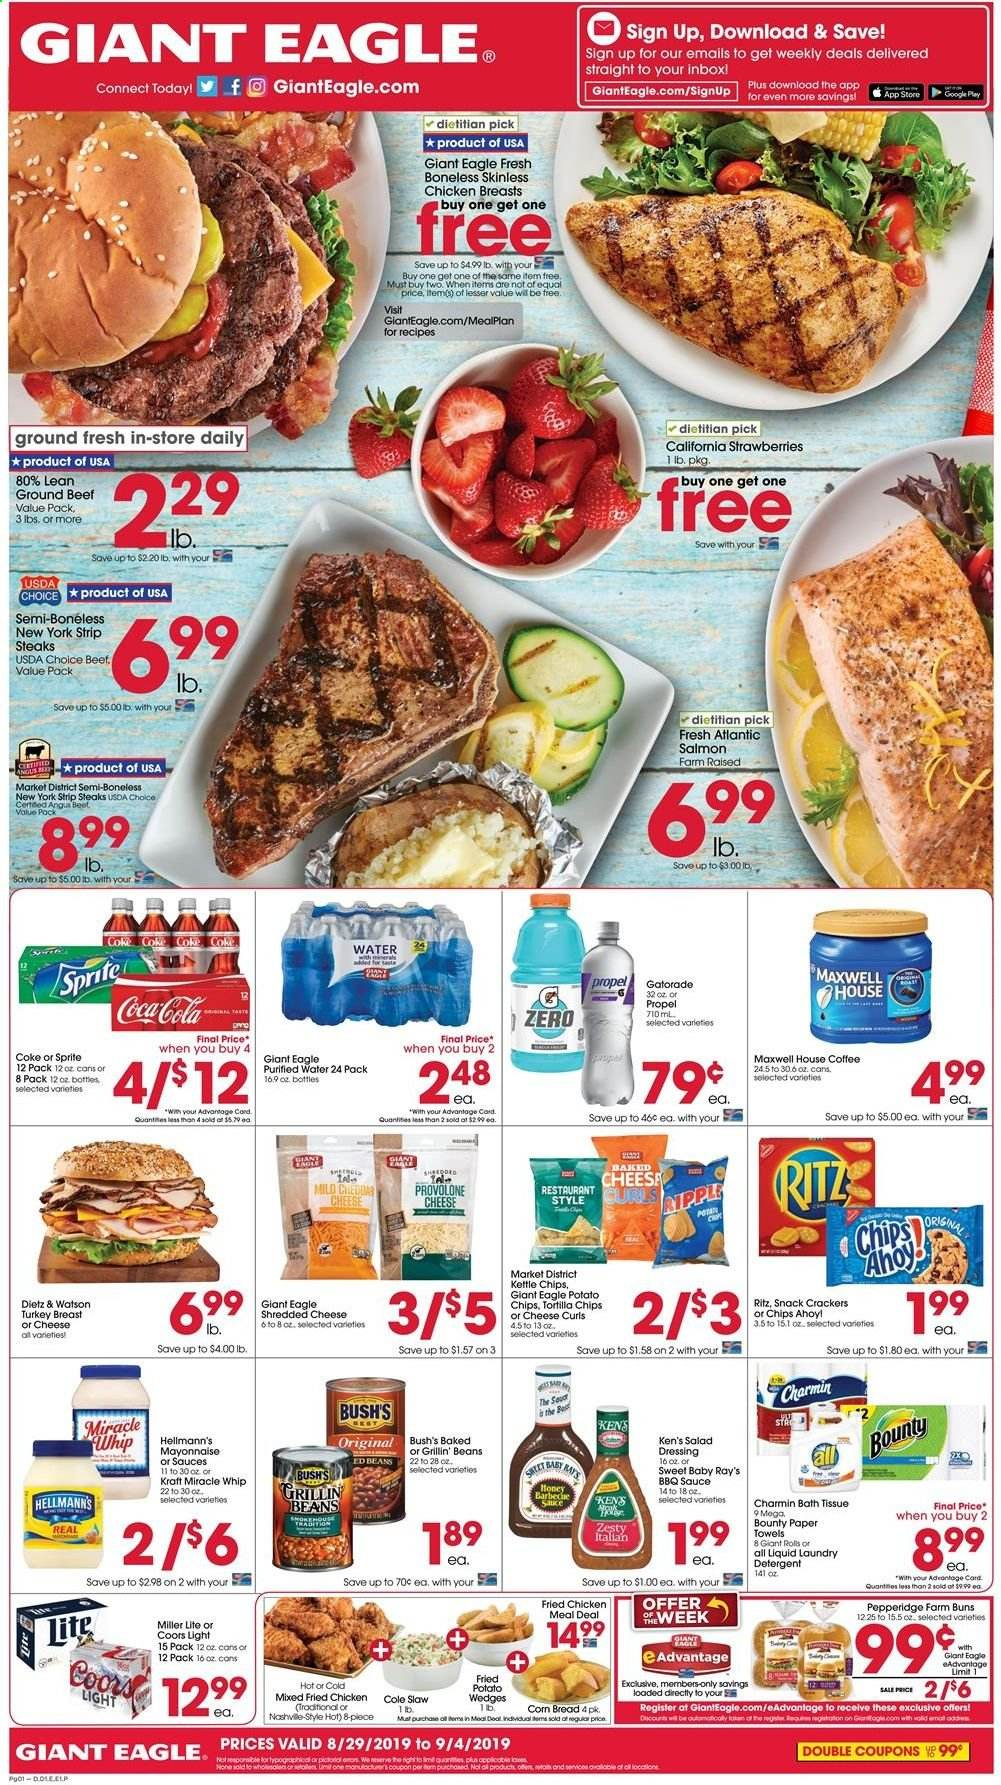 Giant Eagle Flyer  - 08.29.2019 - 09.04.2019. Page 1.